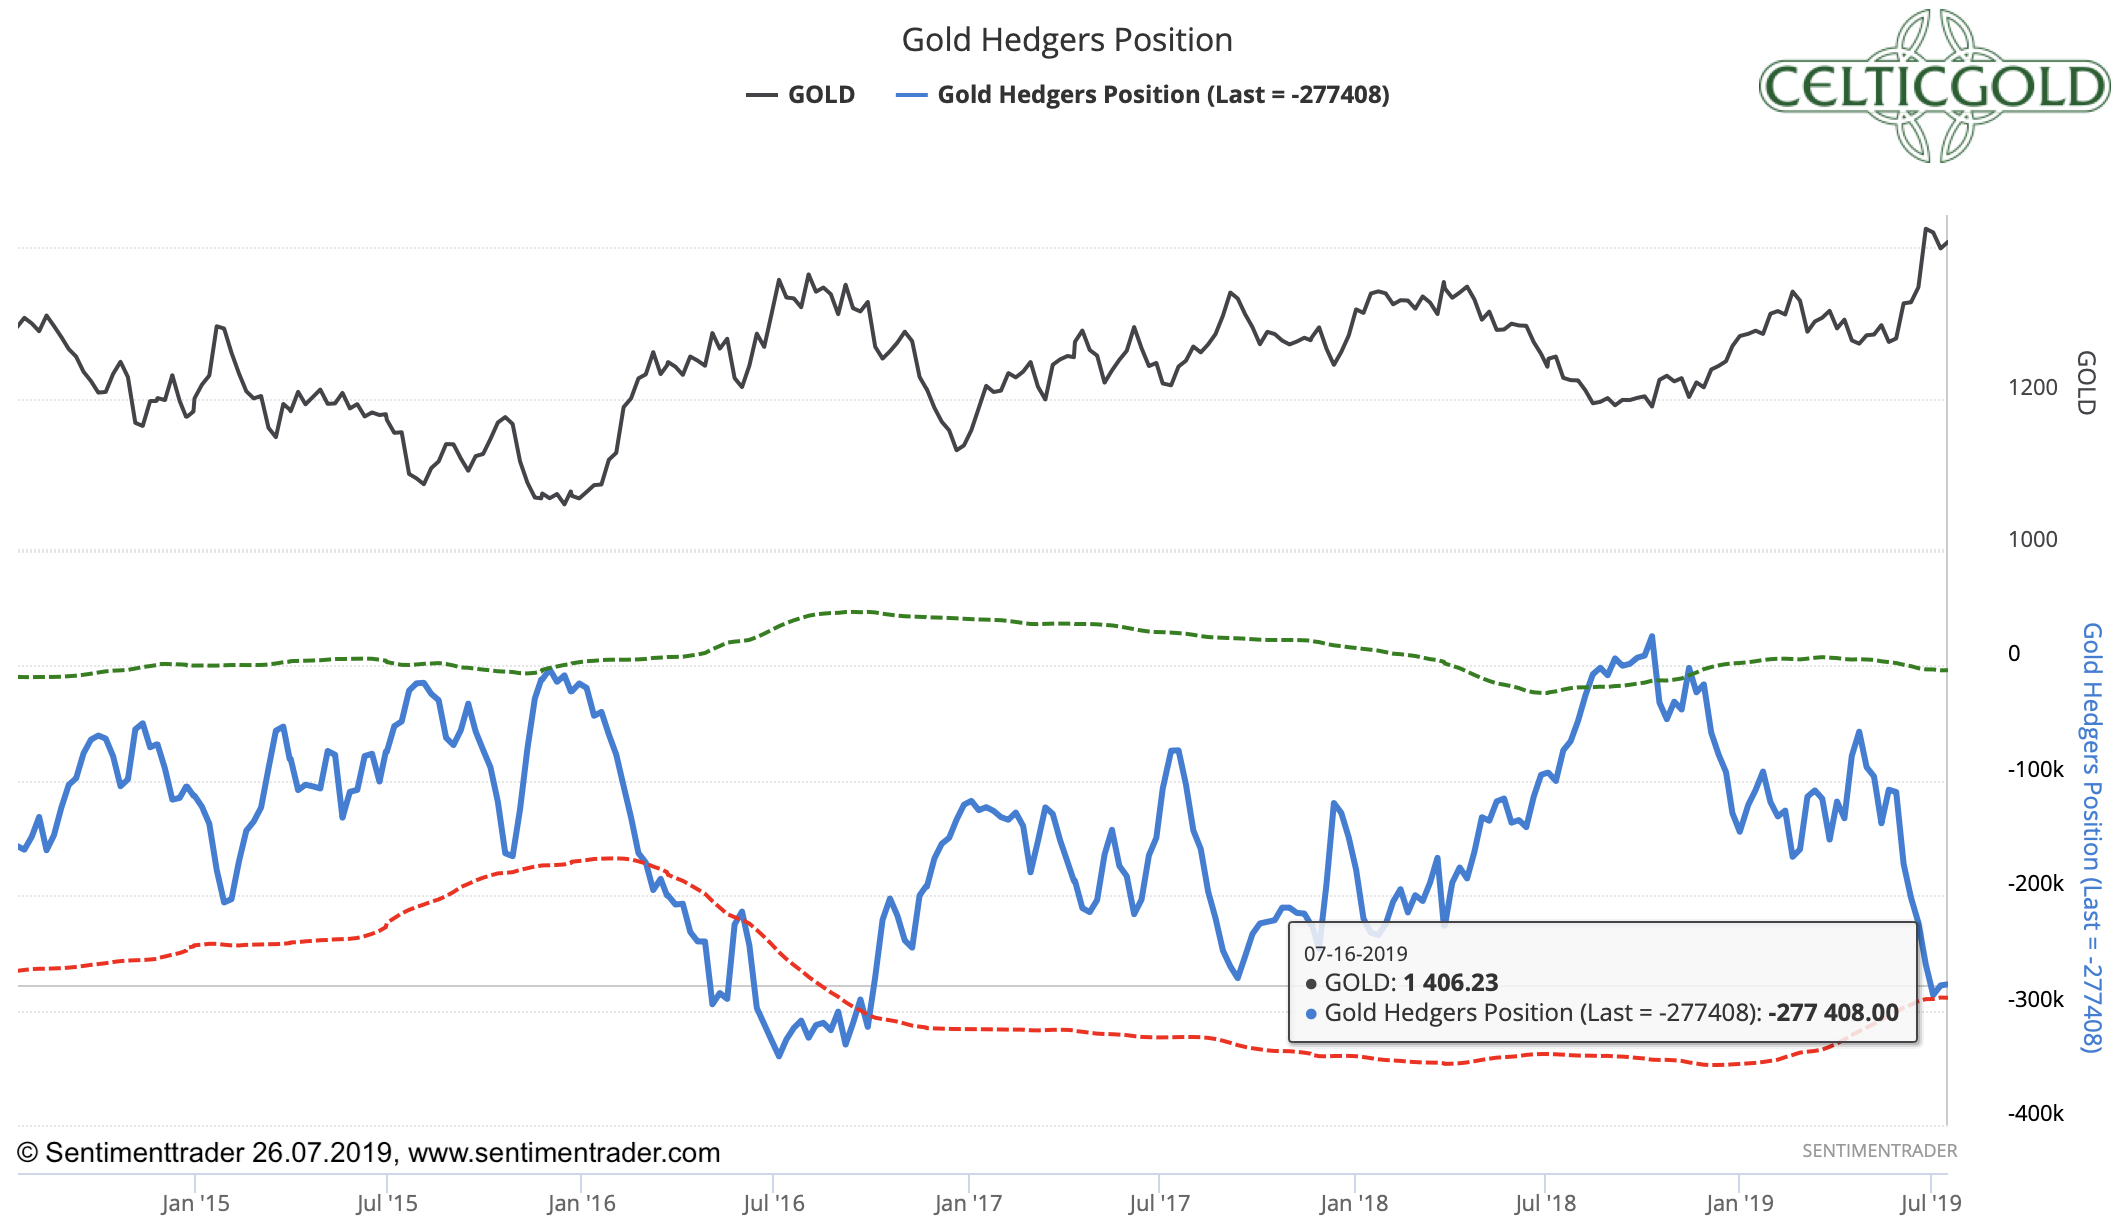 Commitment of Trades for Gold as of July 16th, 2019. Source: Sentimenttrader